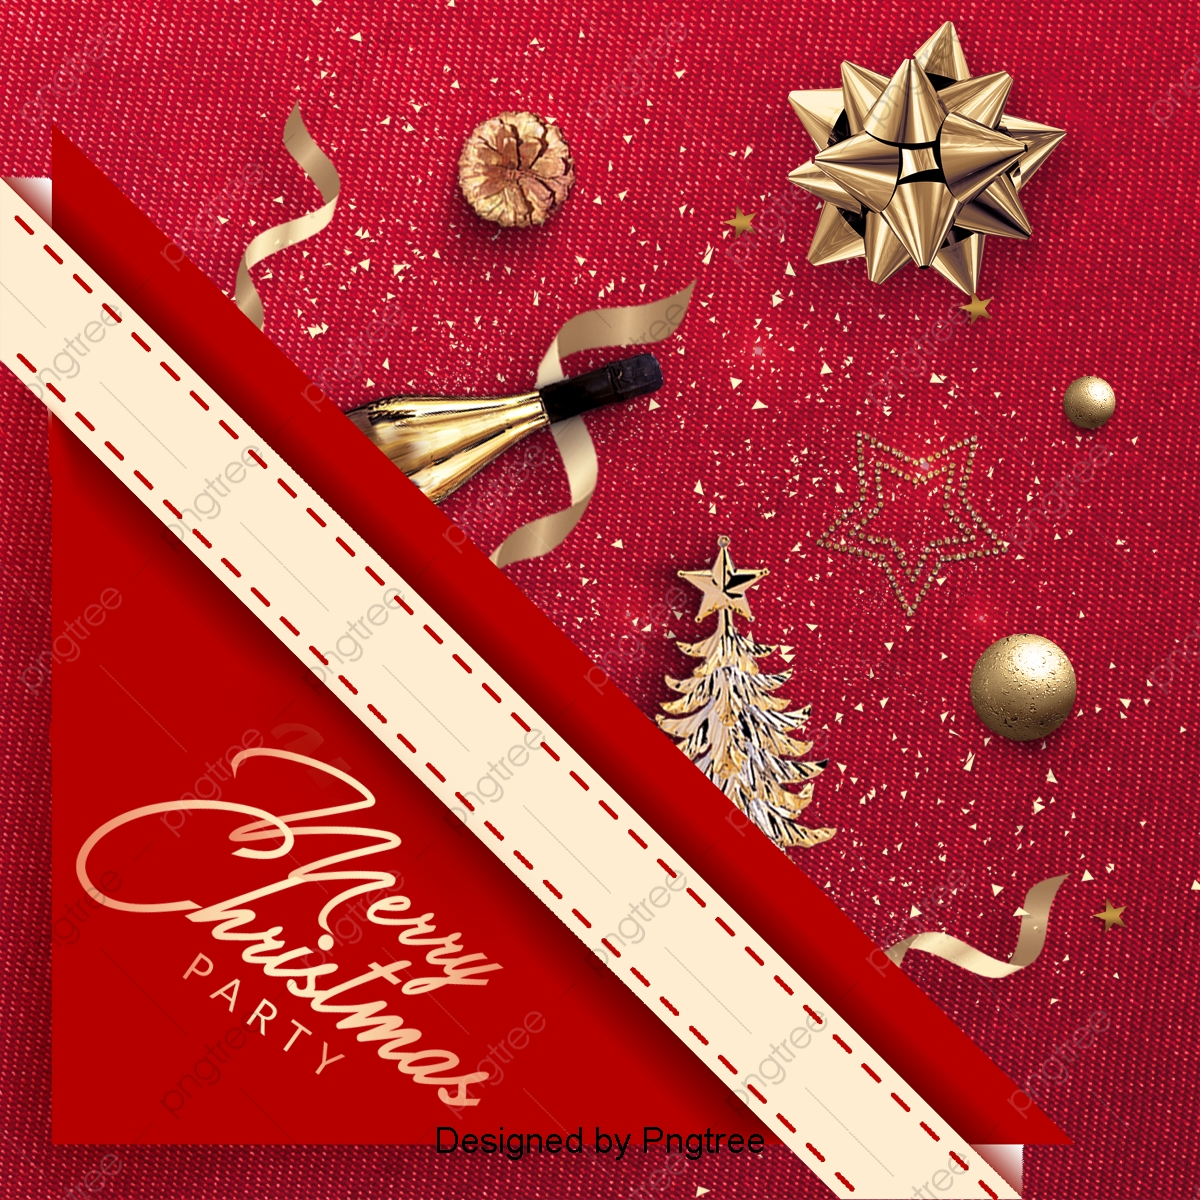 Christmas Invitation Background Png.Exquisite Christmas Party Invitation Poster Background